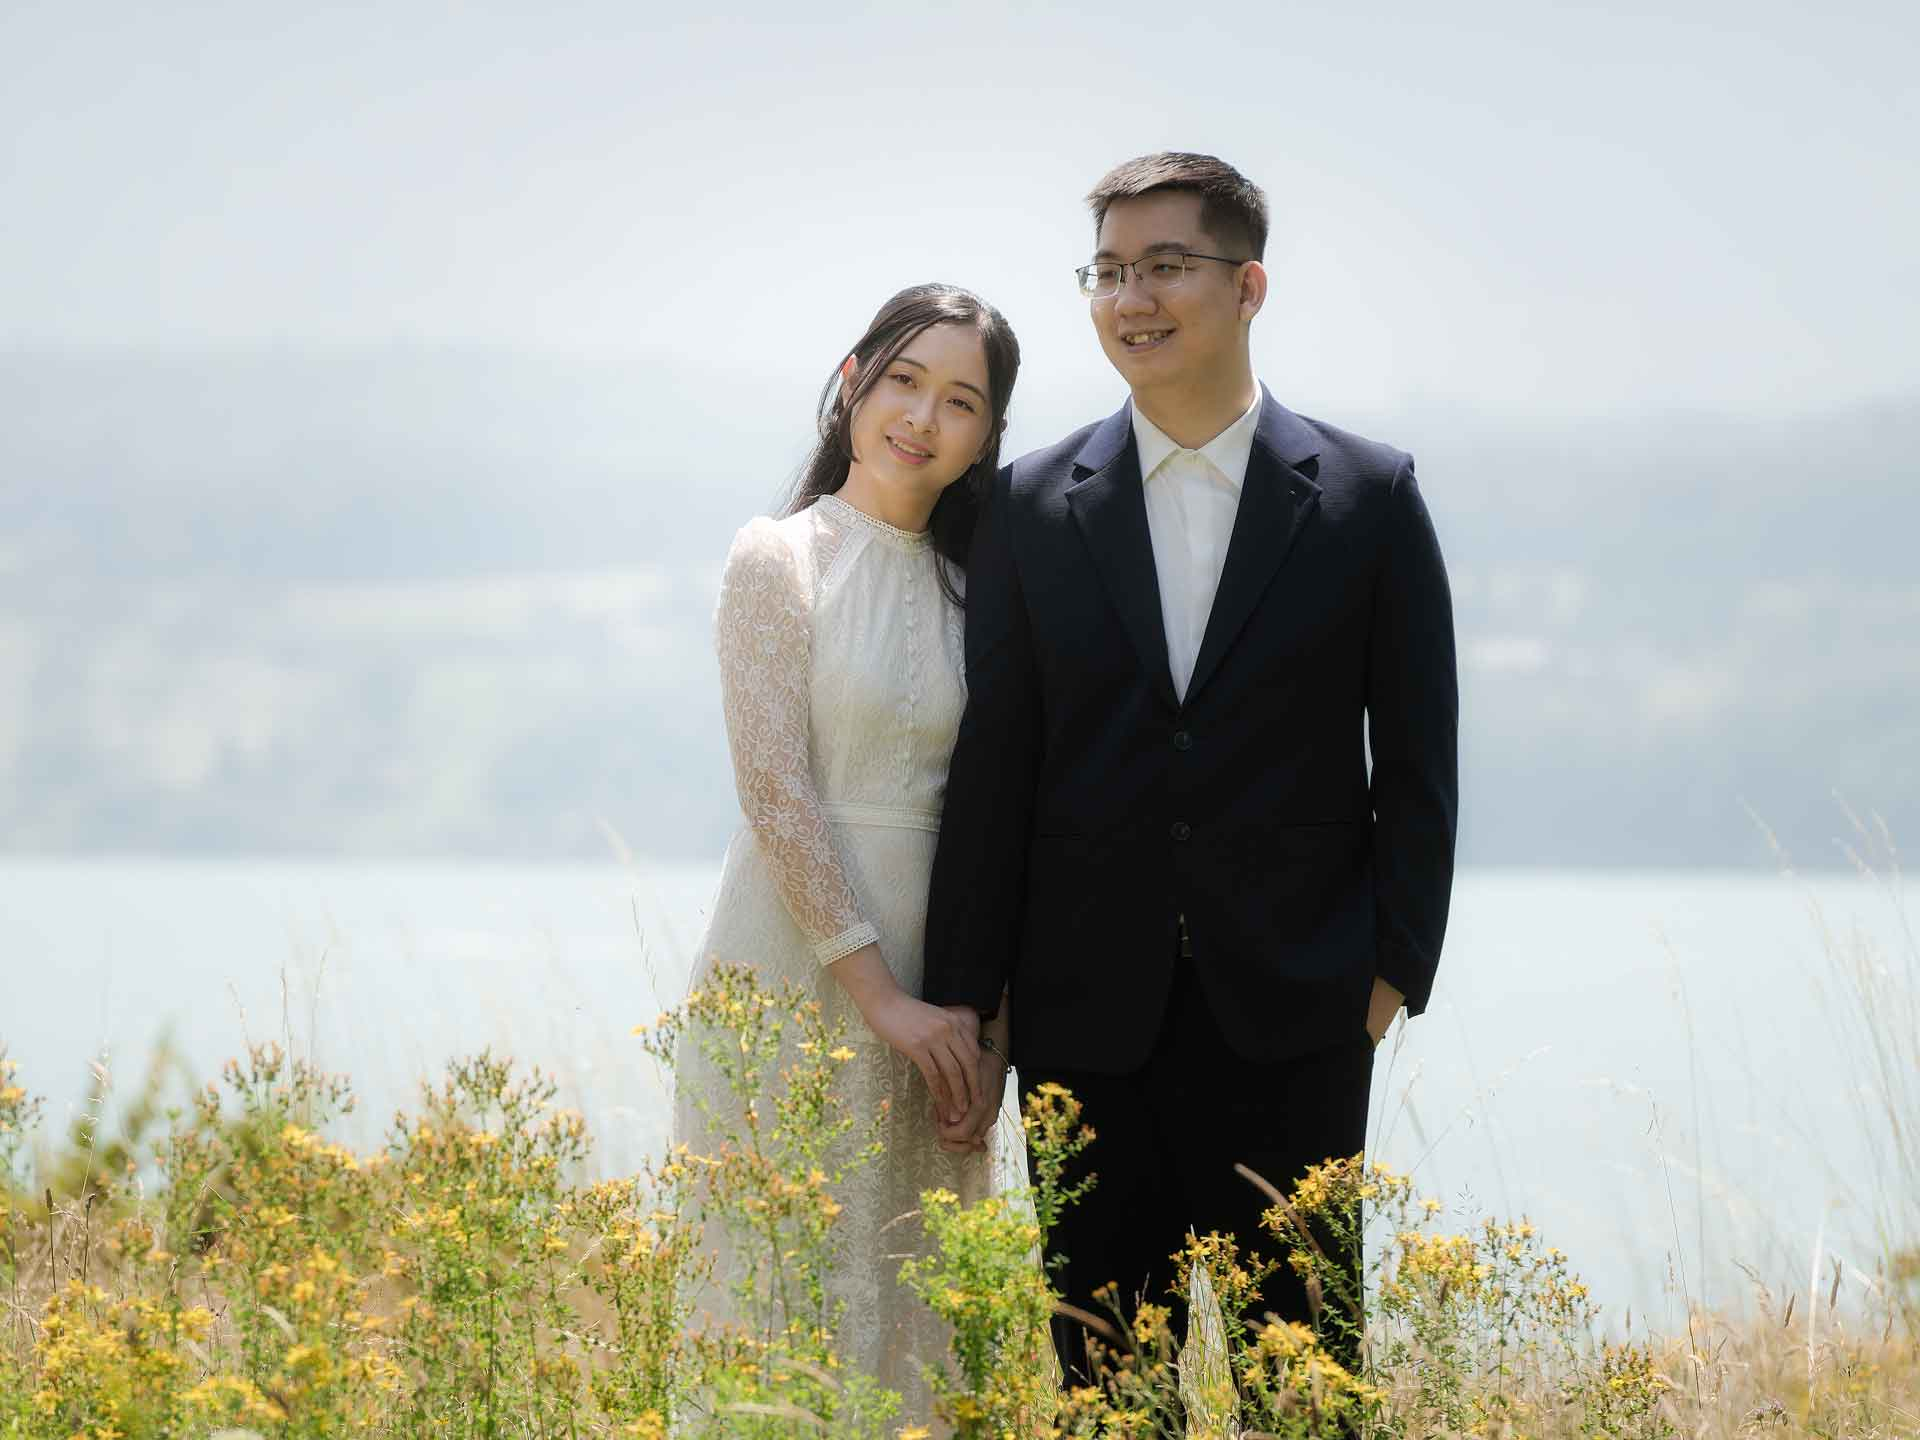 After Wedding Fotoshooting